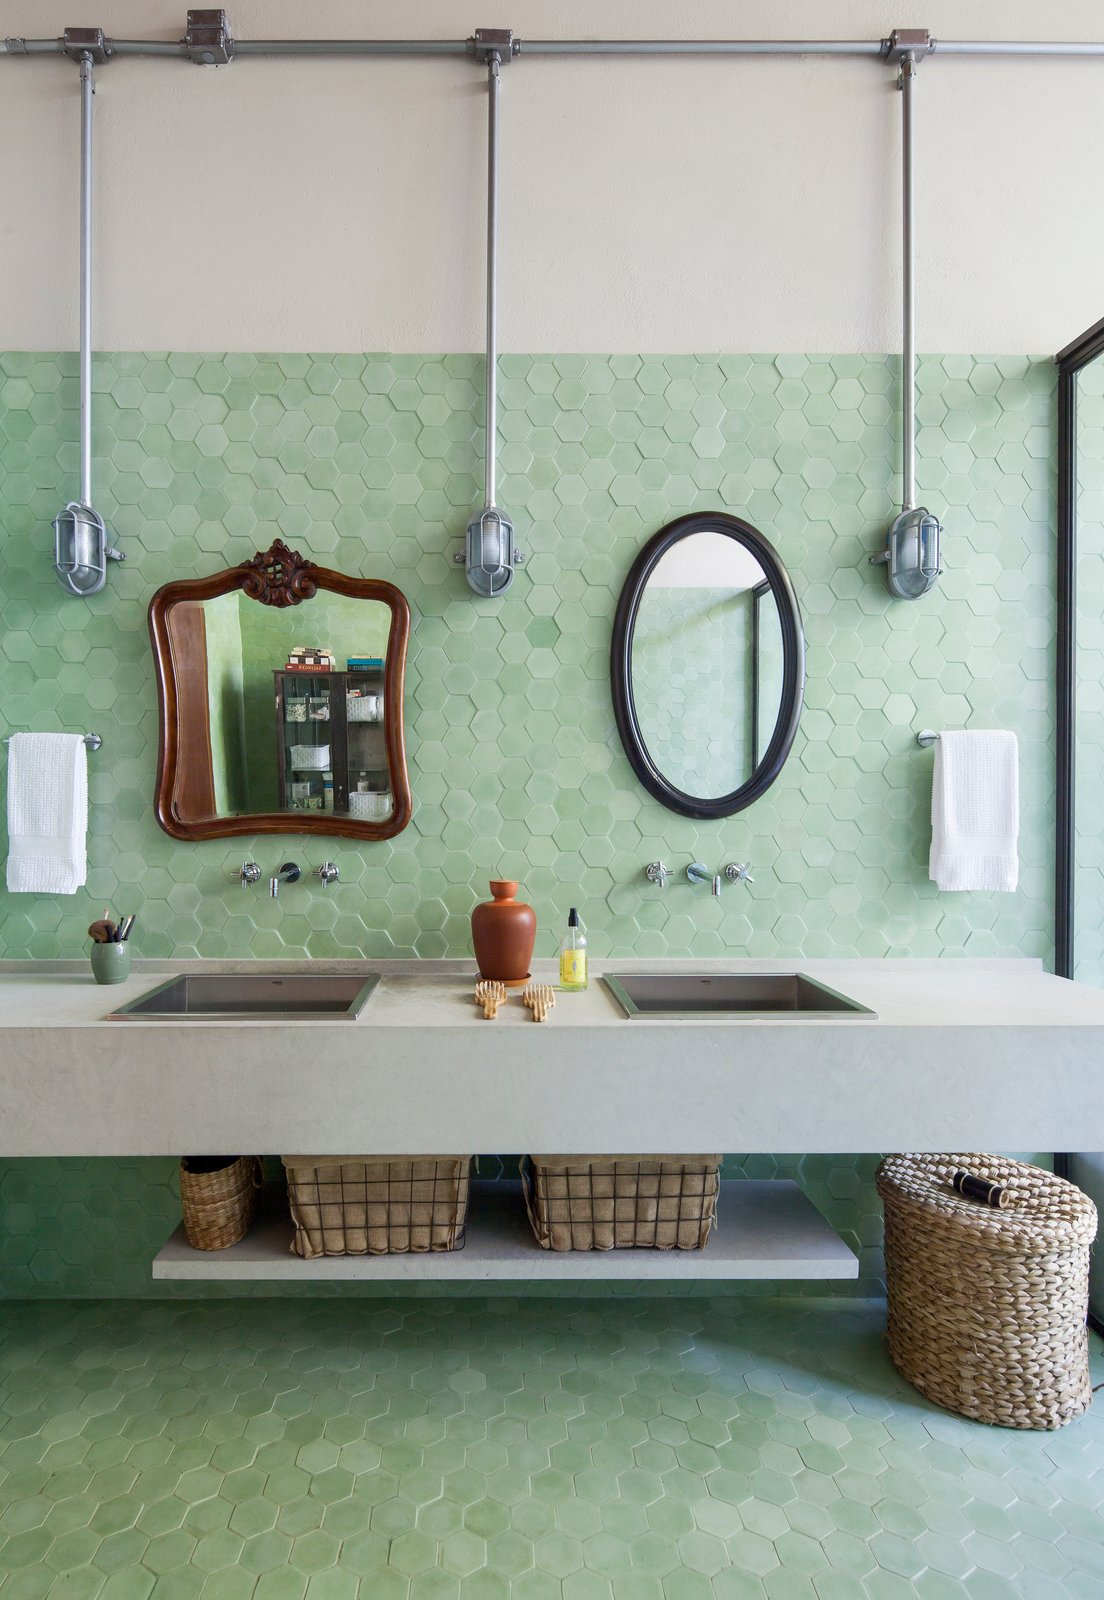 Bath Room, Wall Lighting, Wall Mount Sink, Mosaic Tile Wall, Porcelain Tile Floor, One Piece Toilet, Stone Counter, Ceramic Tile Wall, Porcelain Tile Wall, and Enclosed Shower  Conde D'eu House